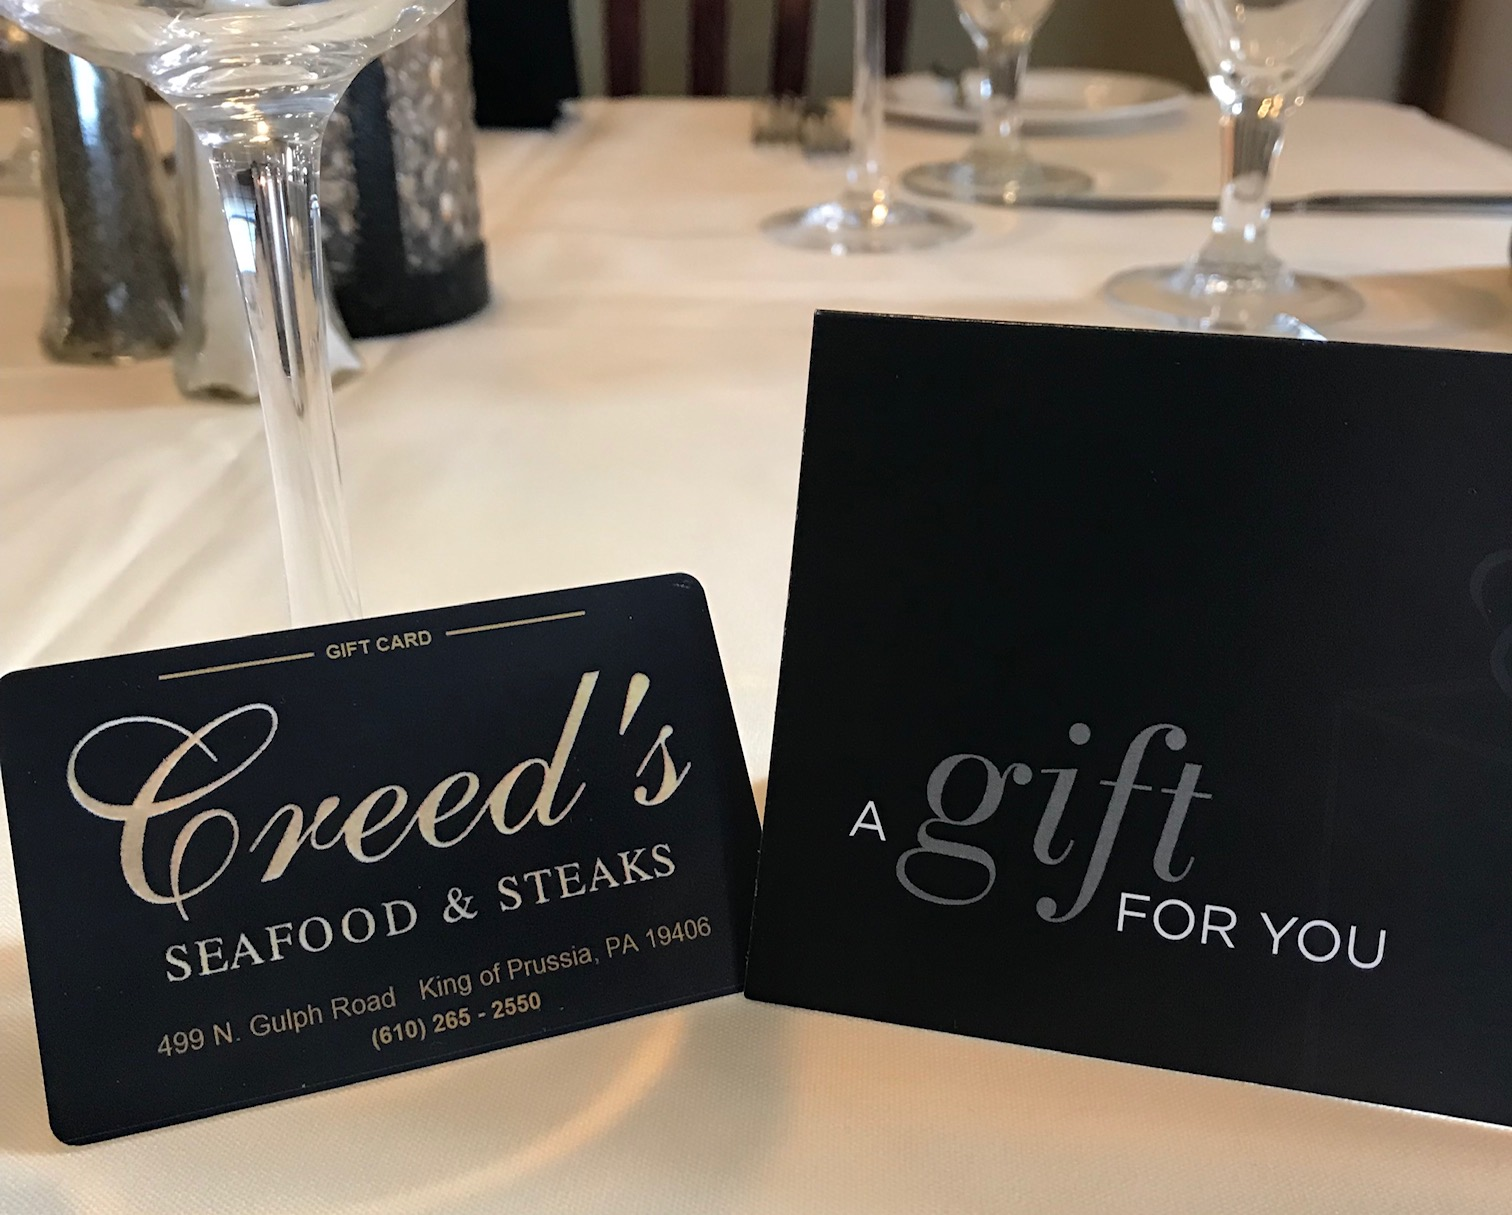 Exclusive Features | Creed's Seafood & Steaks